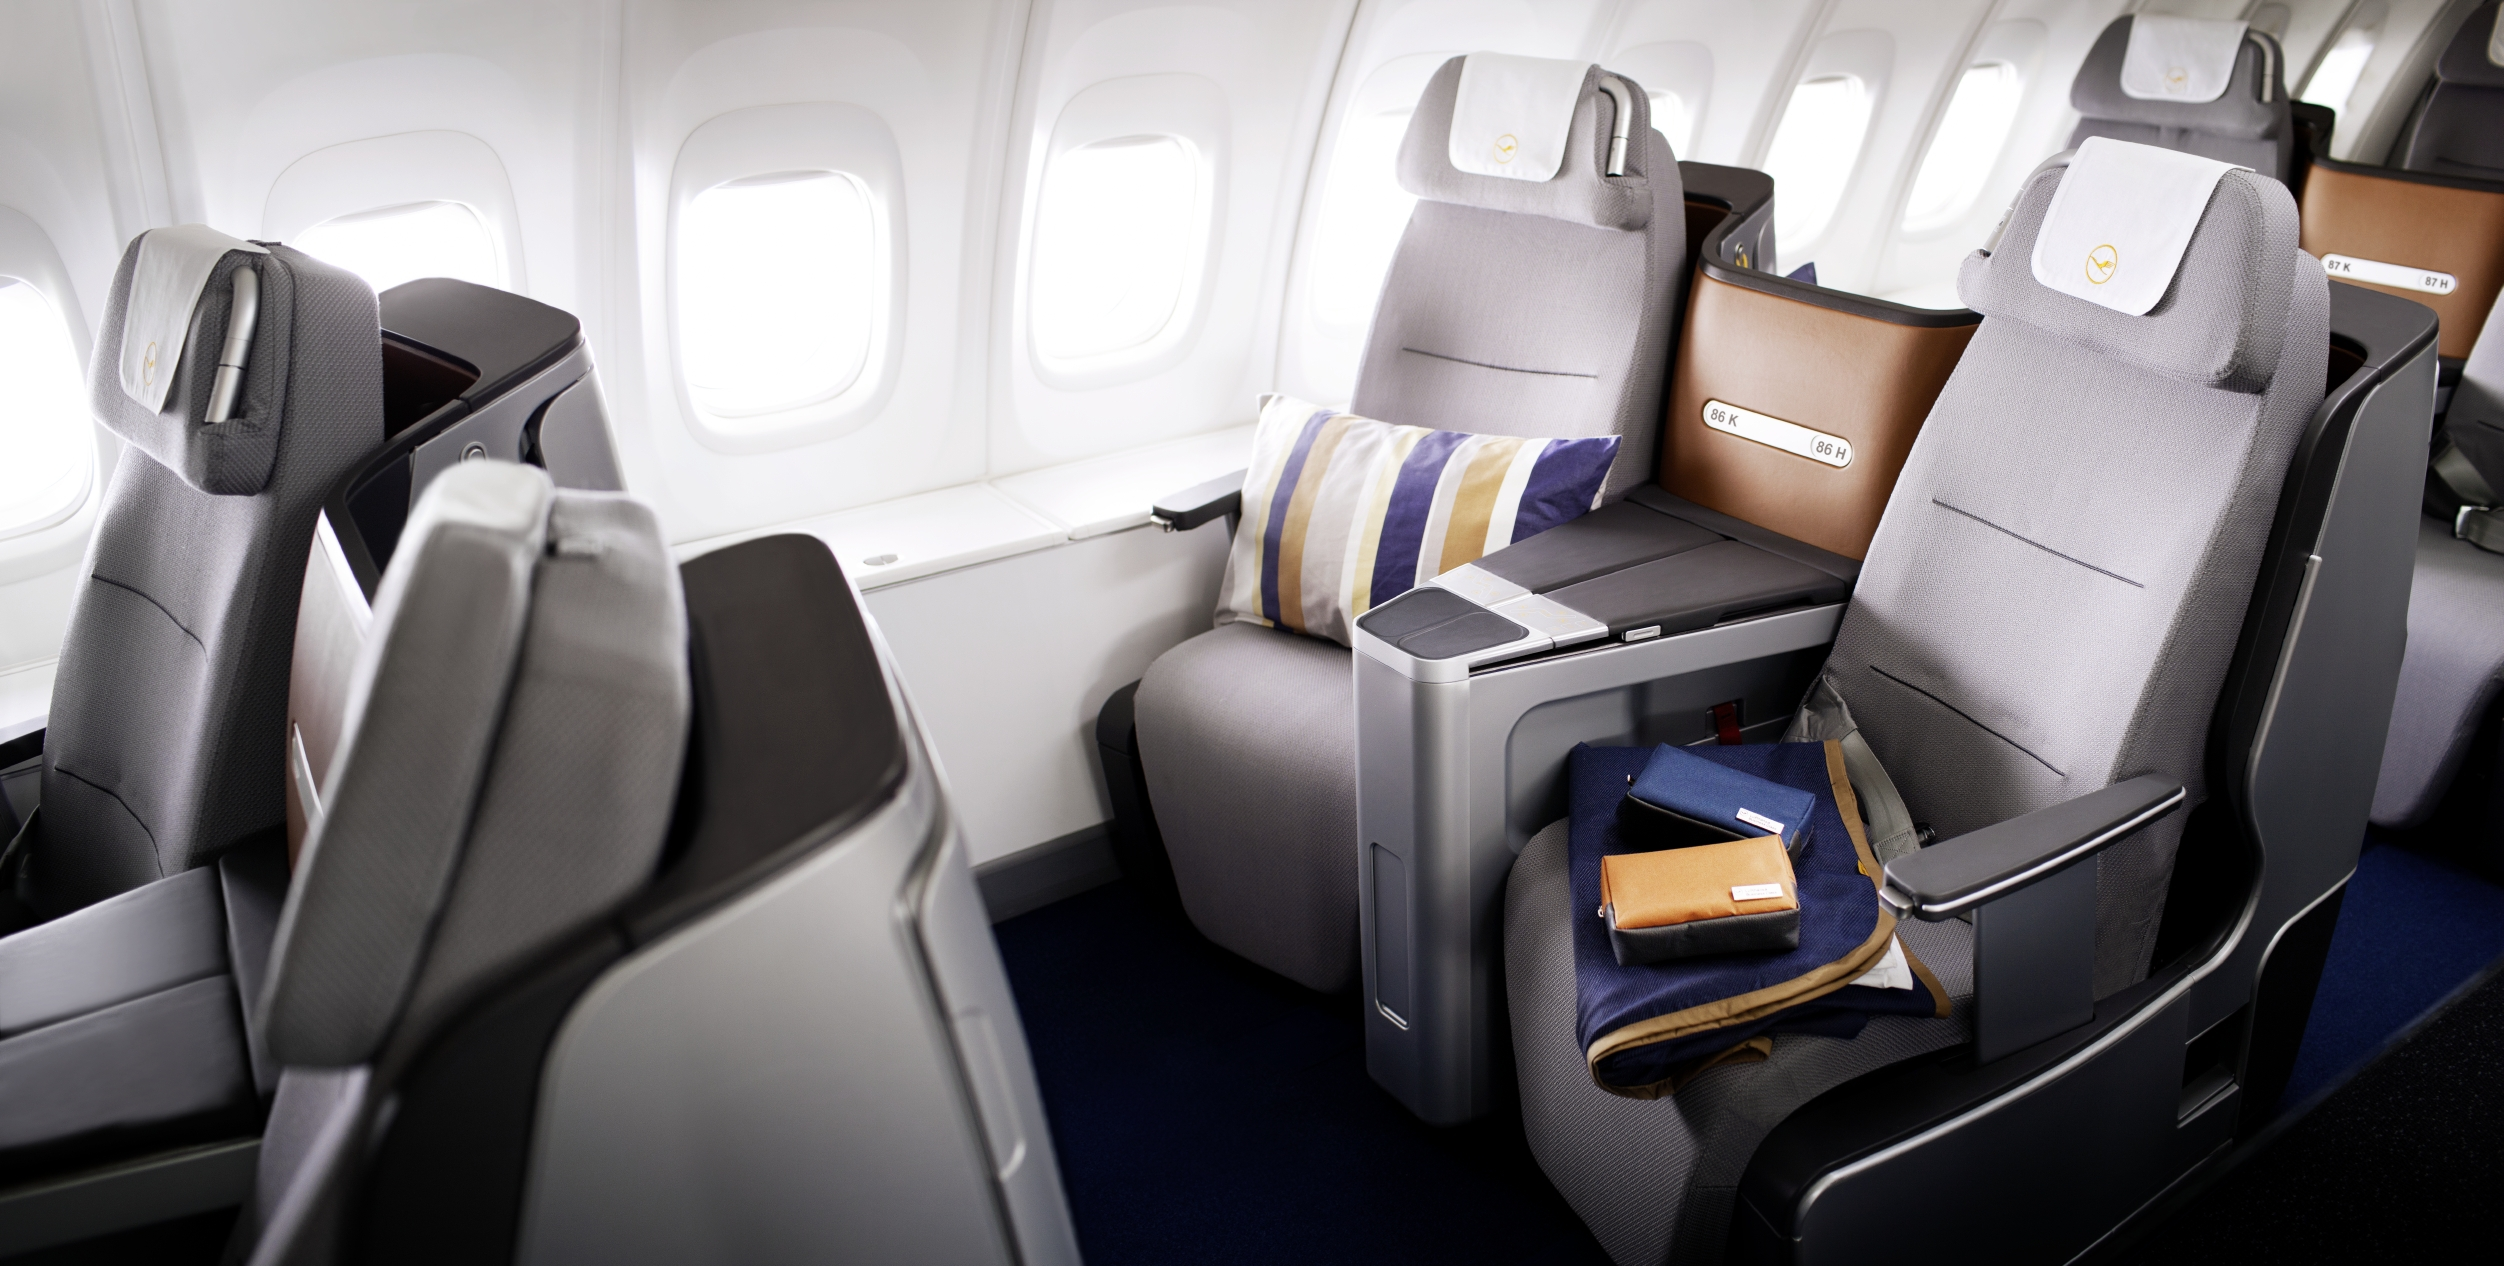 Tips To Get Cheap International Business Class Tickets While Booking